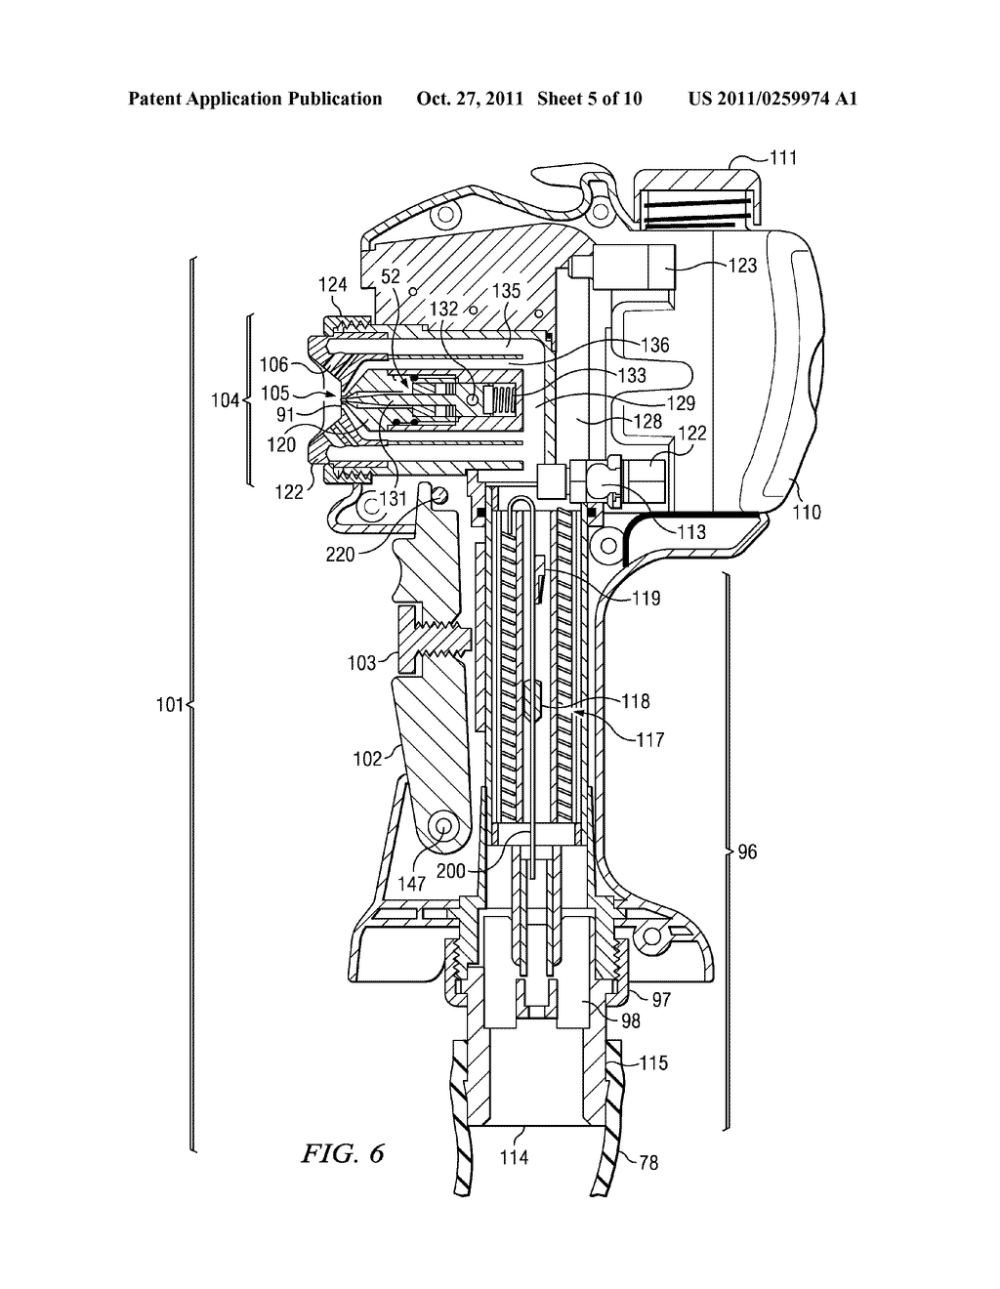 medium resolution of base unit for hand held skin treatment spray system diagram schematic and image 06